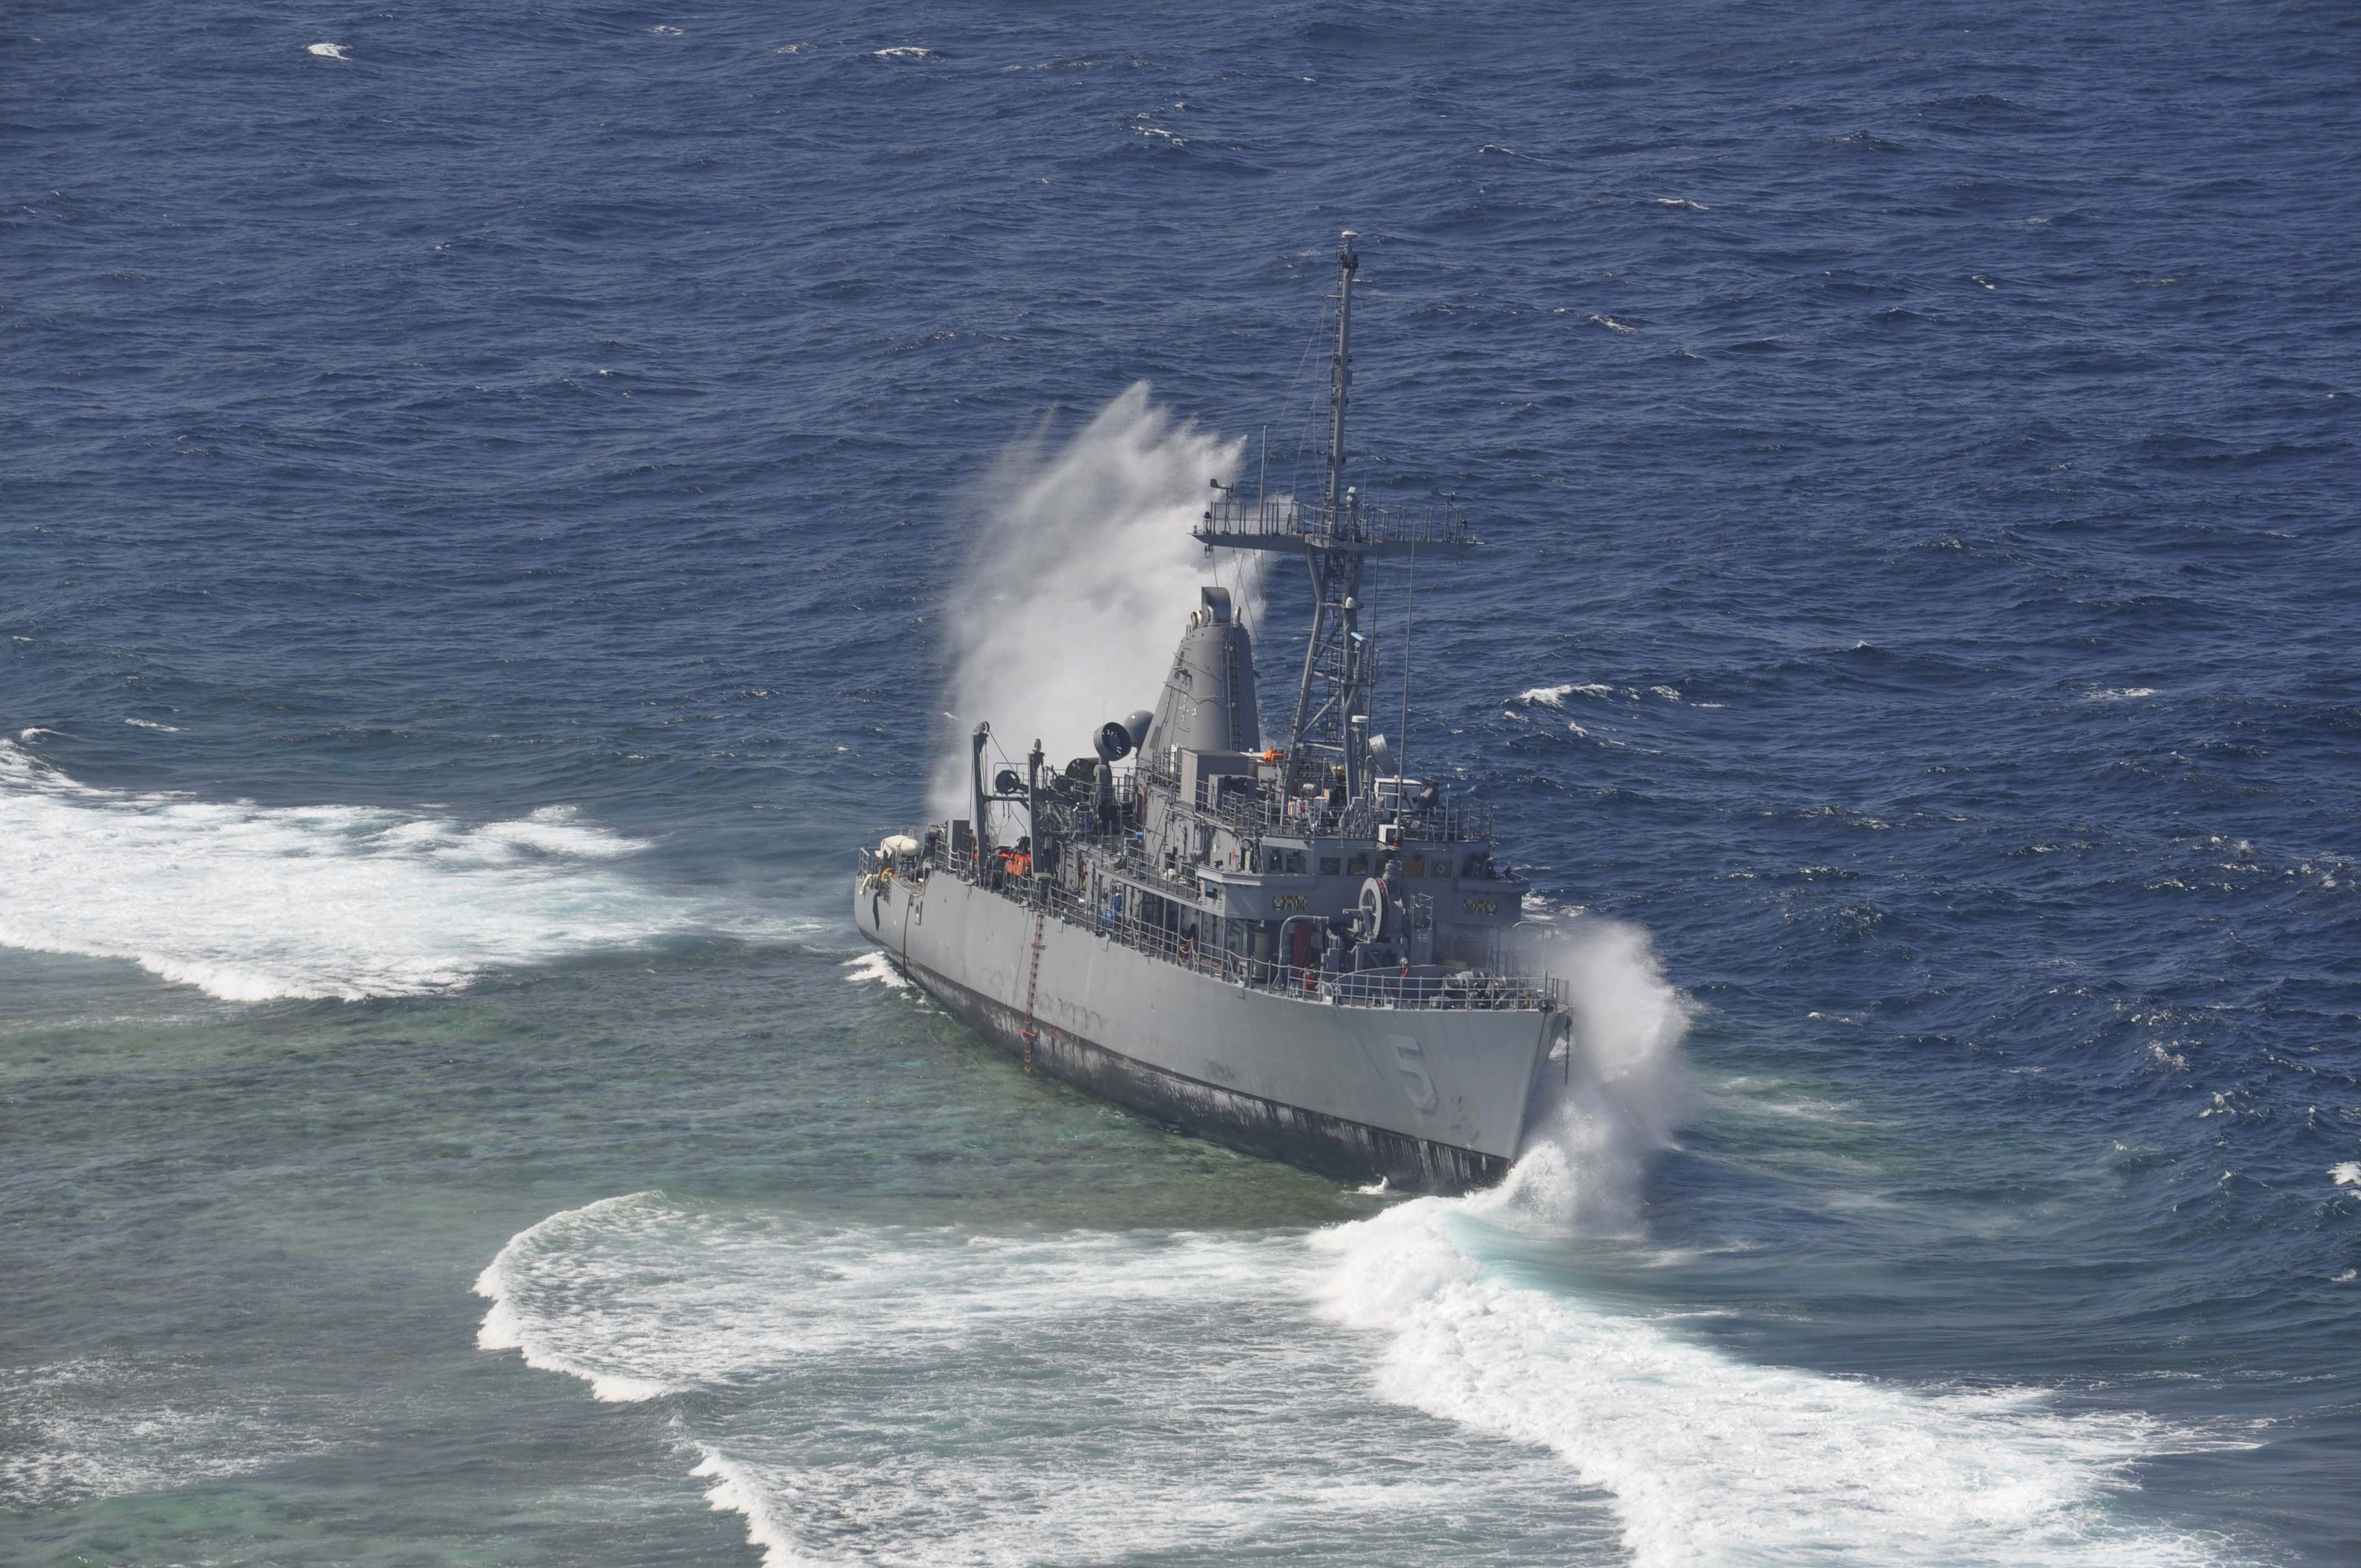 USS_Guardian_being_struck_by_a_wave_while_aground.jpg